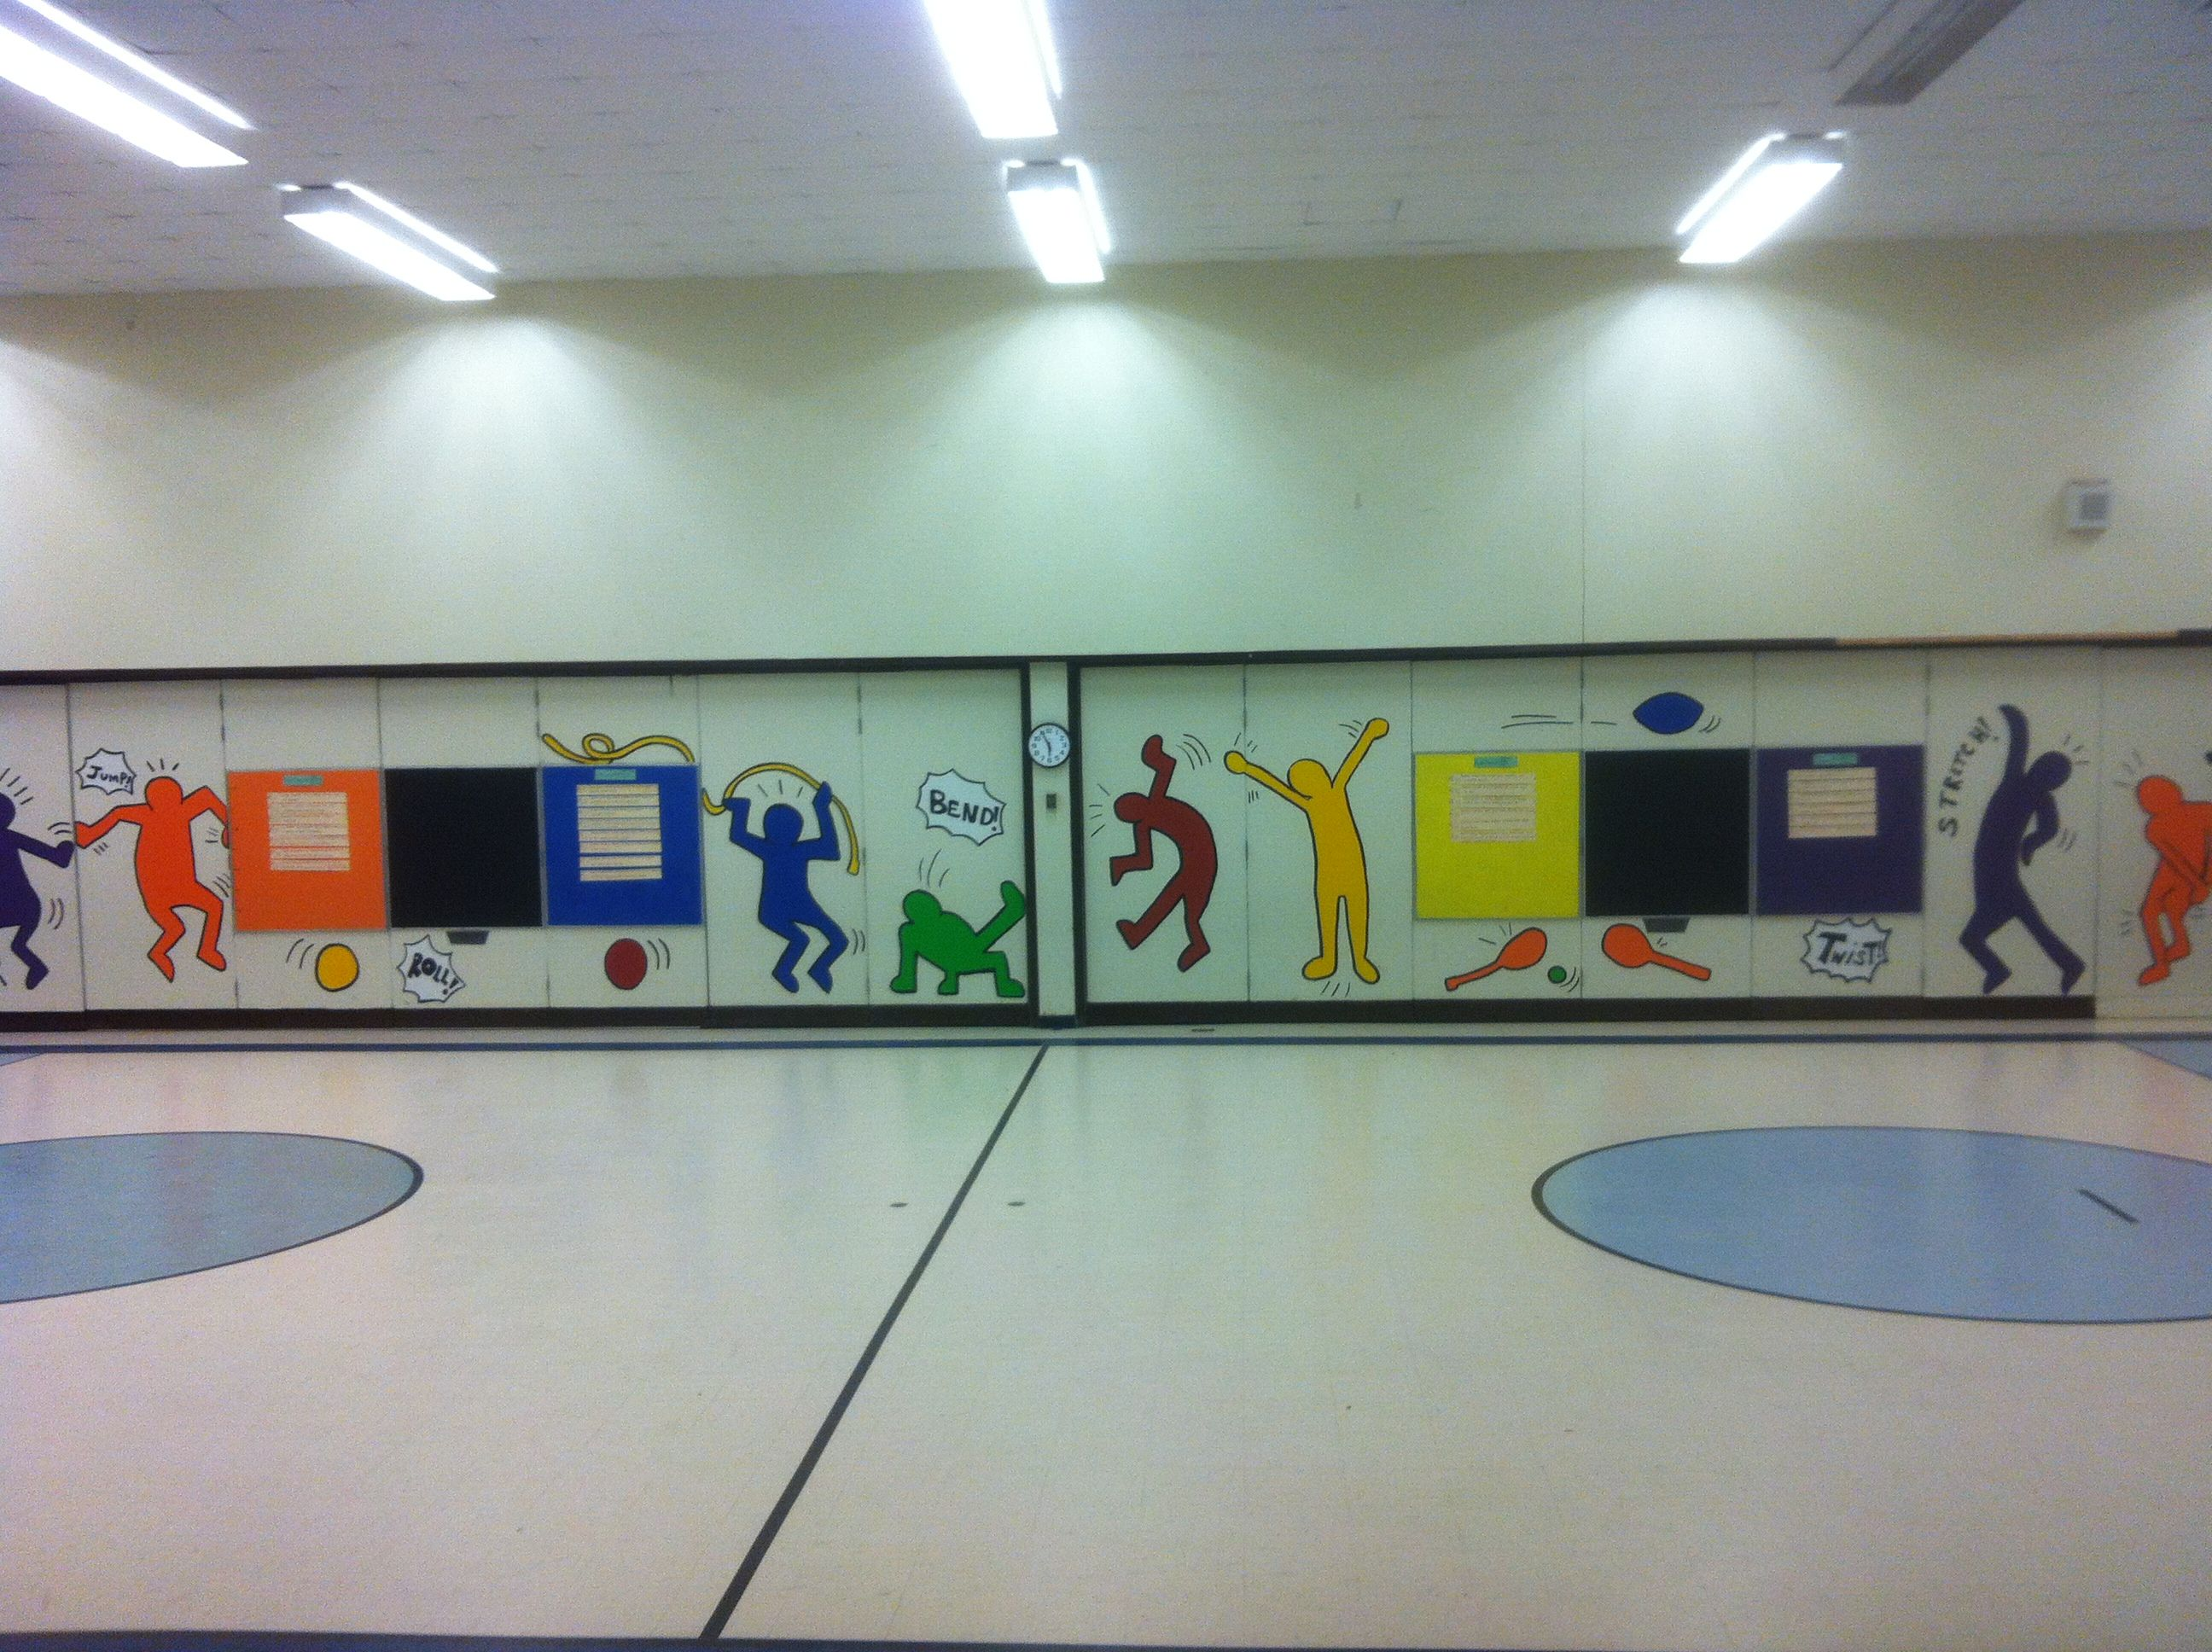 Easy Wall Mural In Gym Using Pe Standard Words Brightens Up And